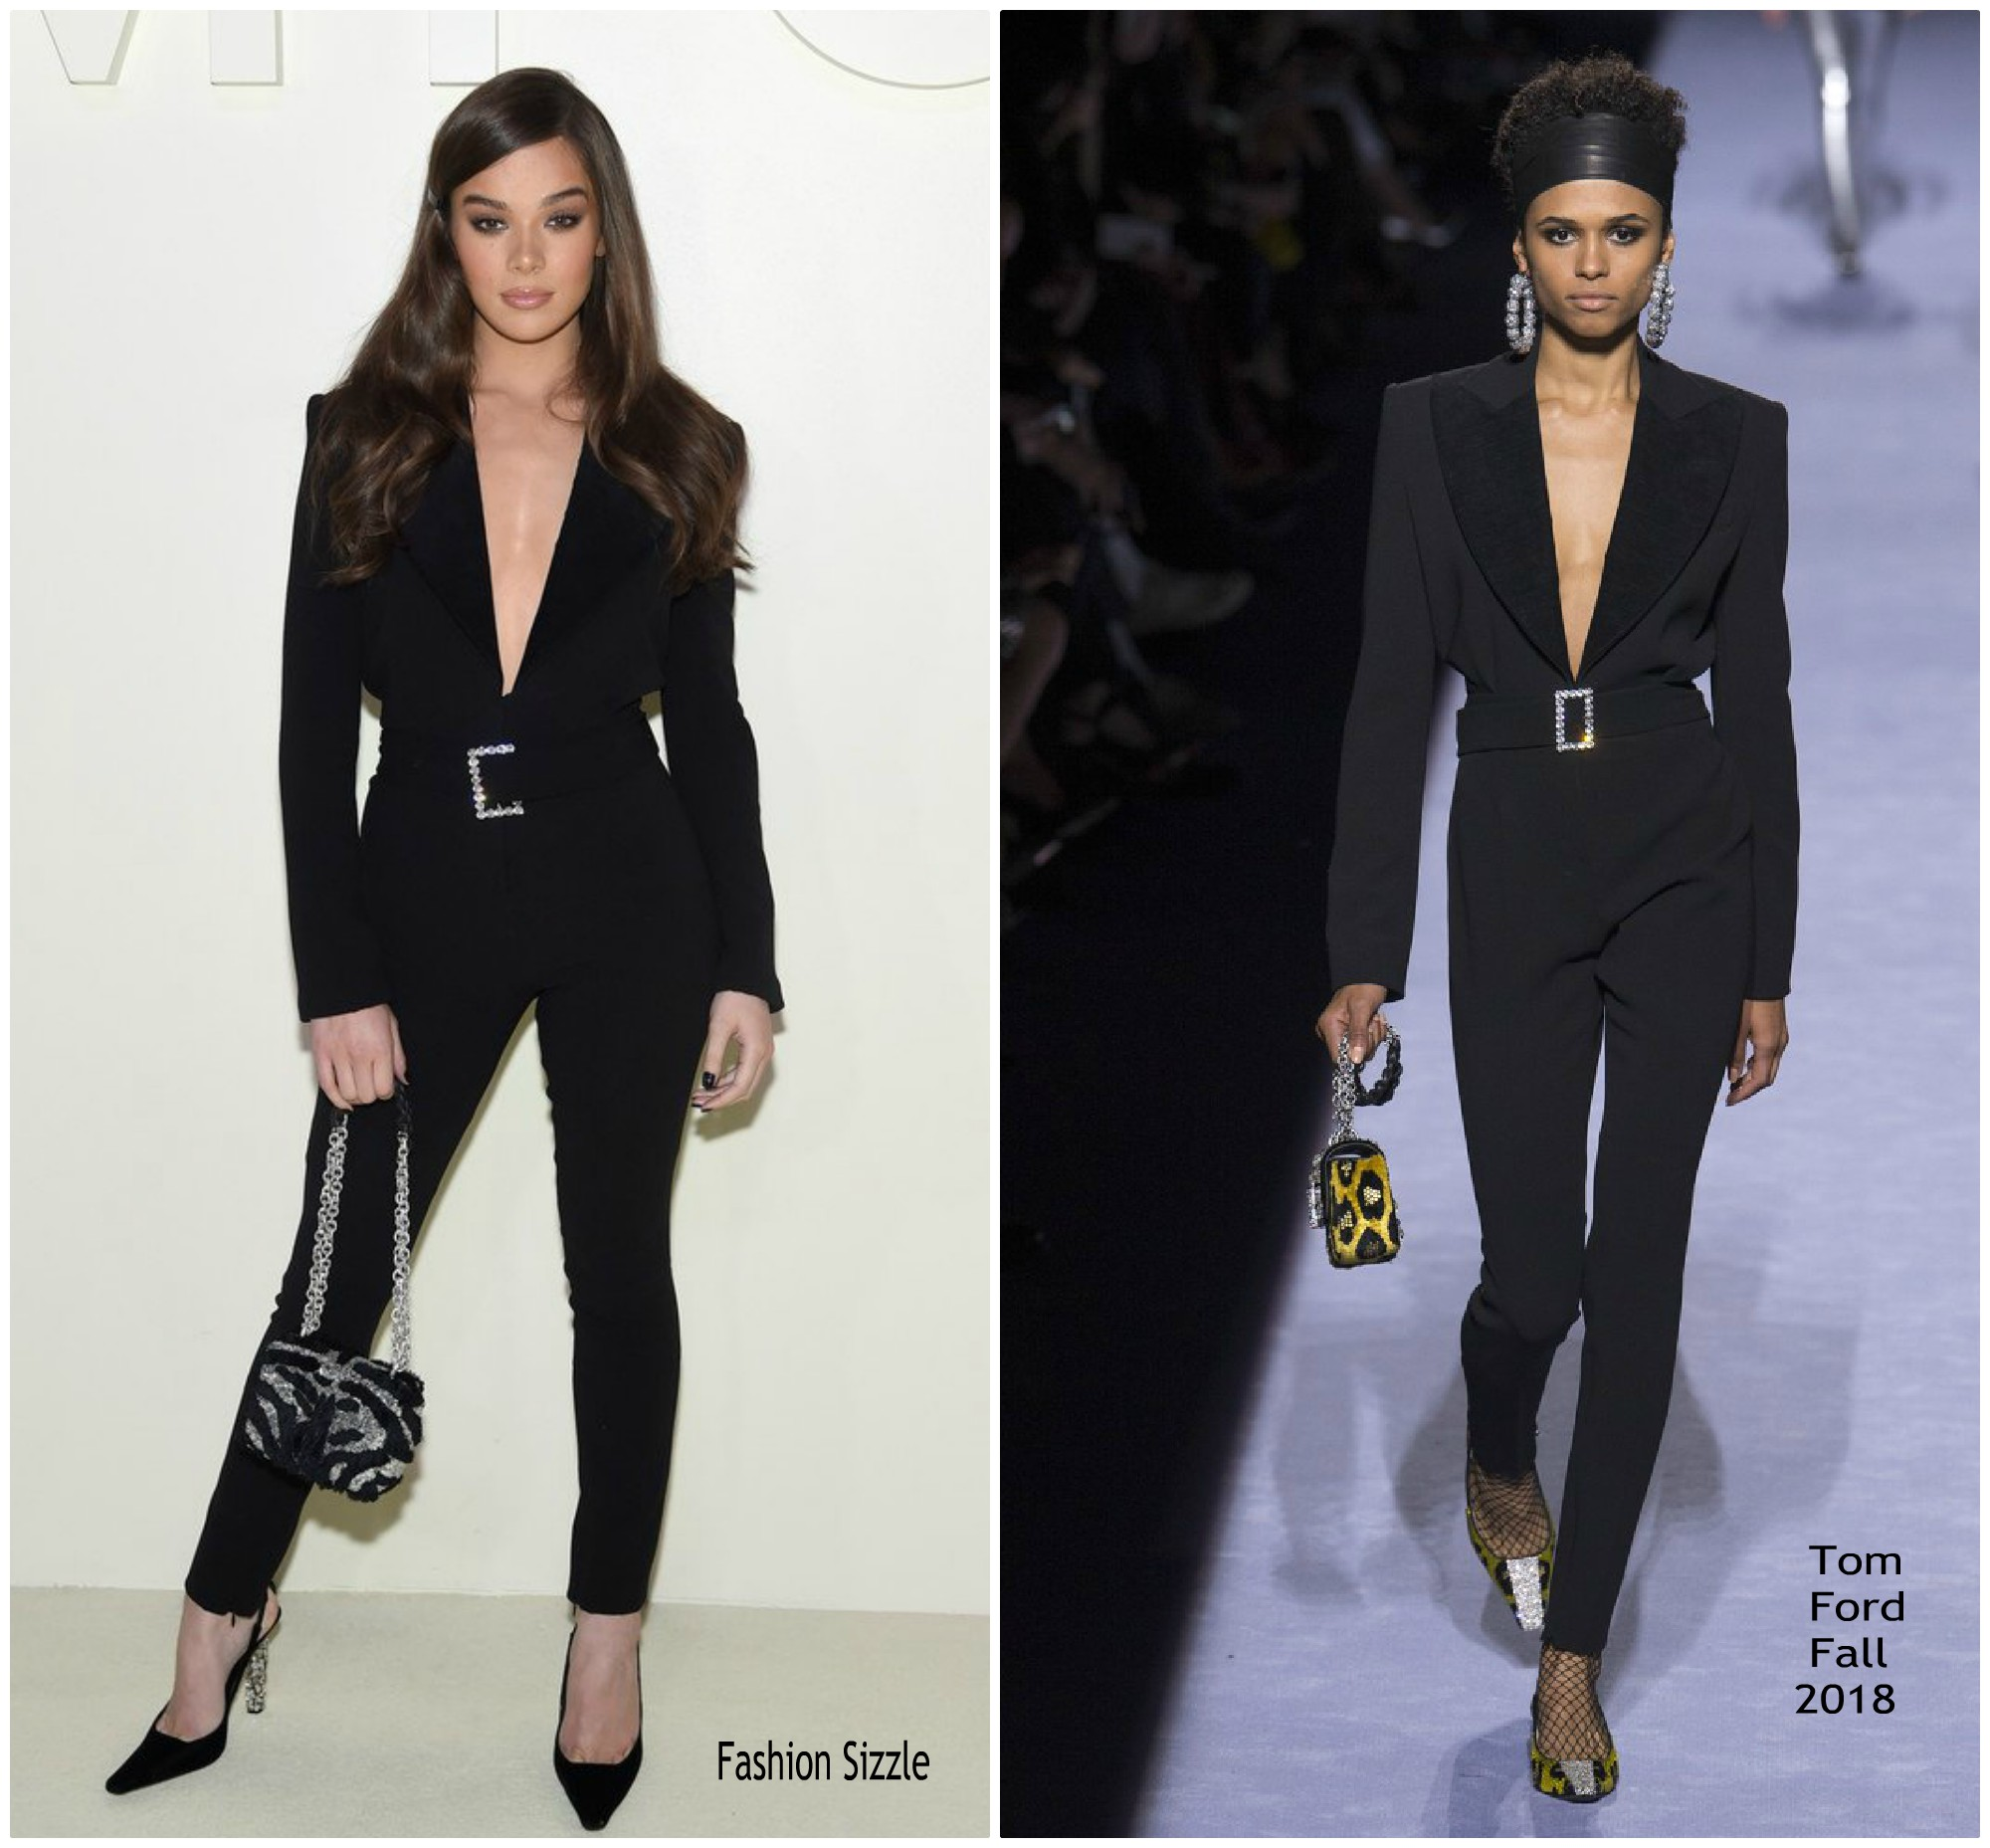 hailee-steinfeld-in-tom-ford-tom-ford-spring-summer-2019-nyfw-fashionshow